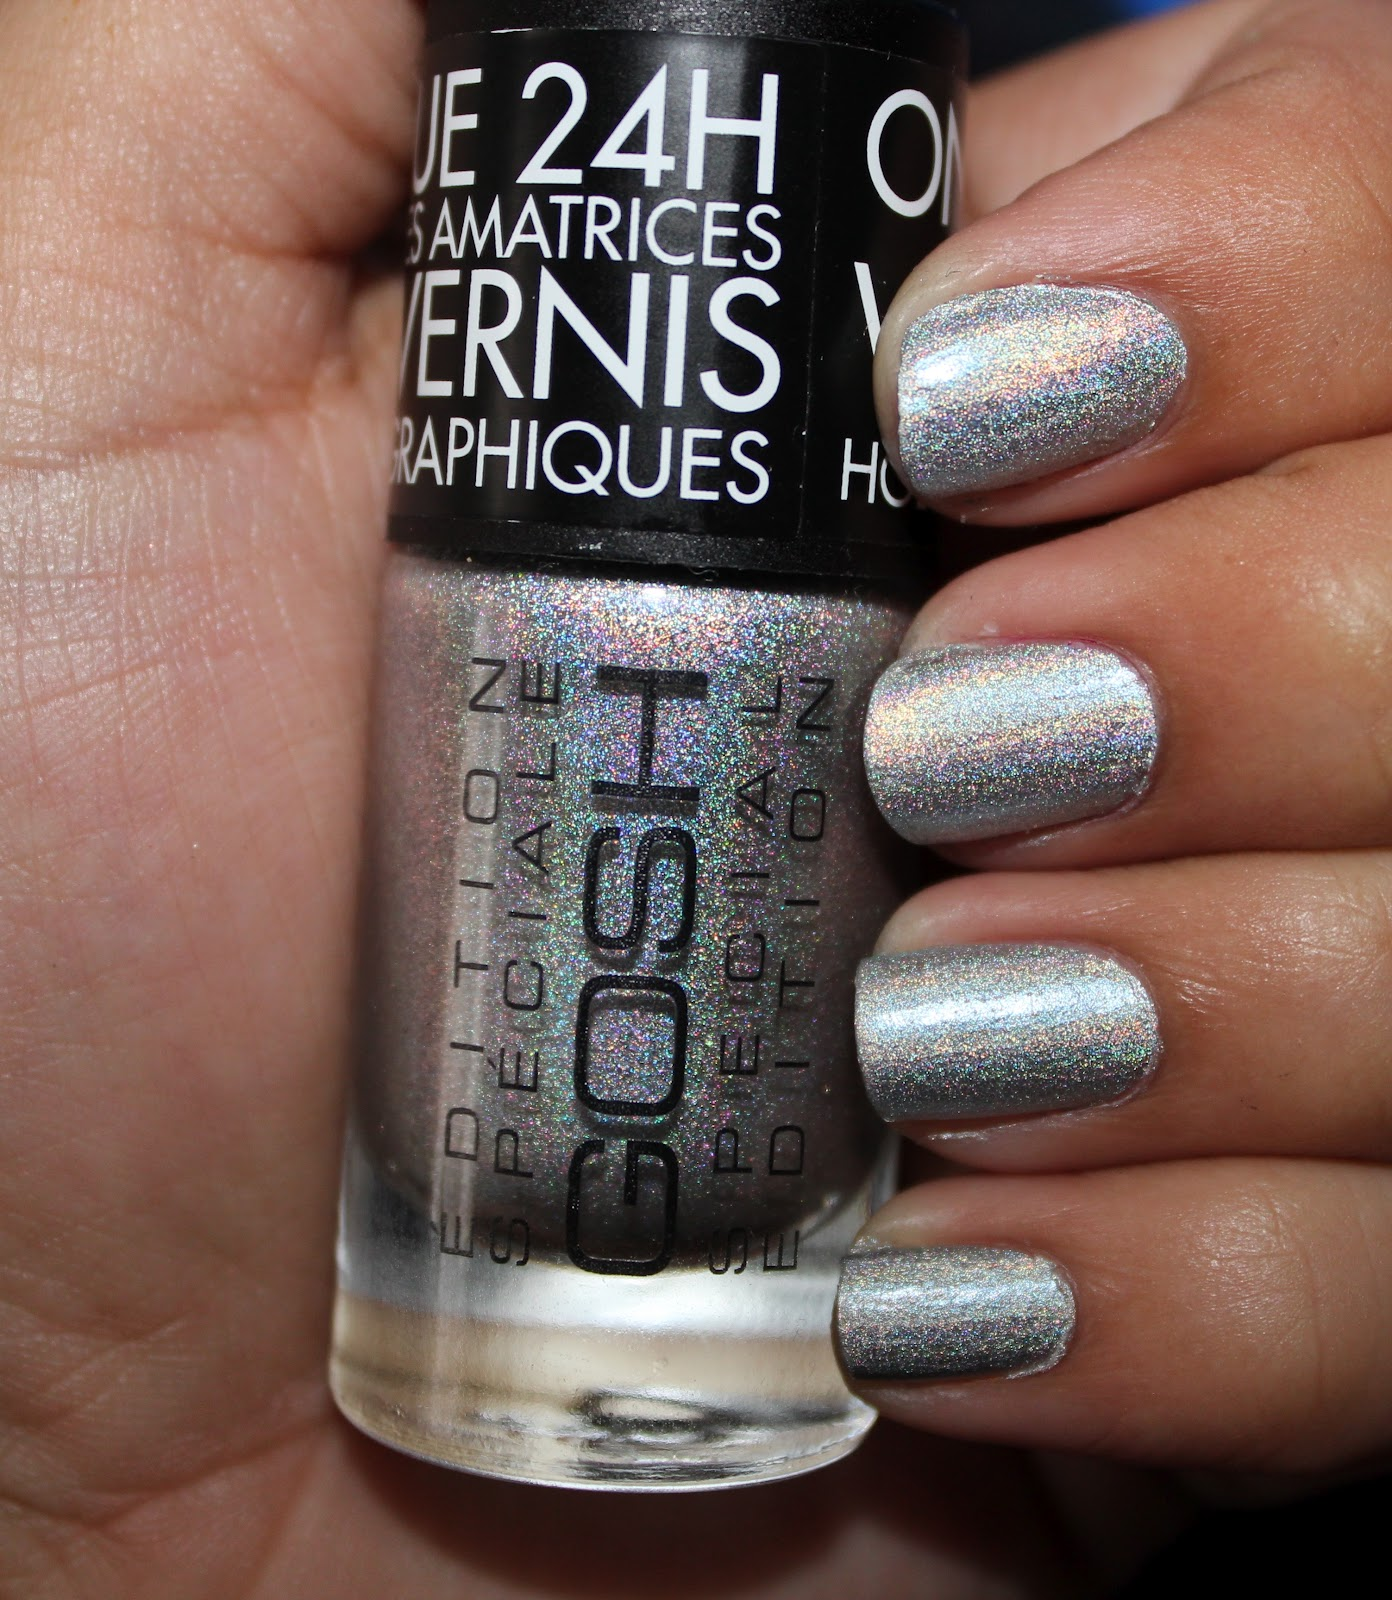 NEW! GOSH Holographic Nail Lacquer!